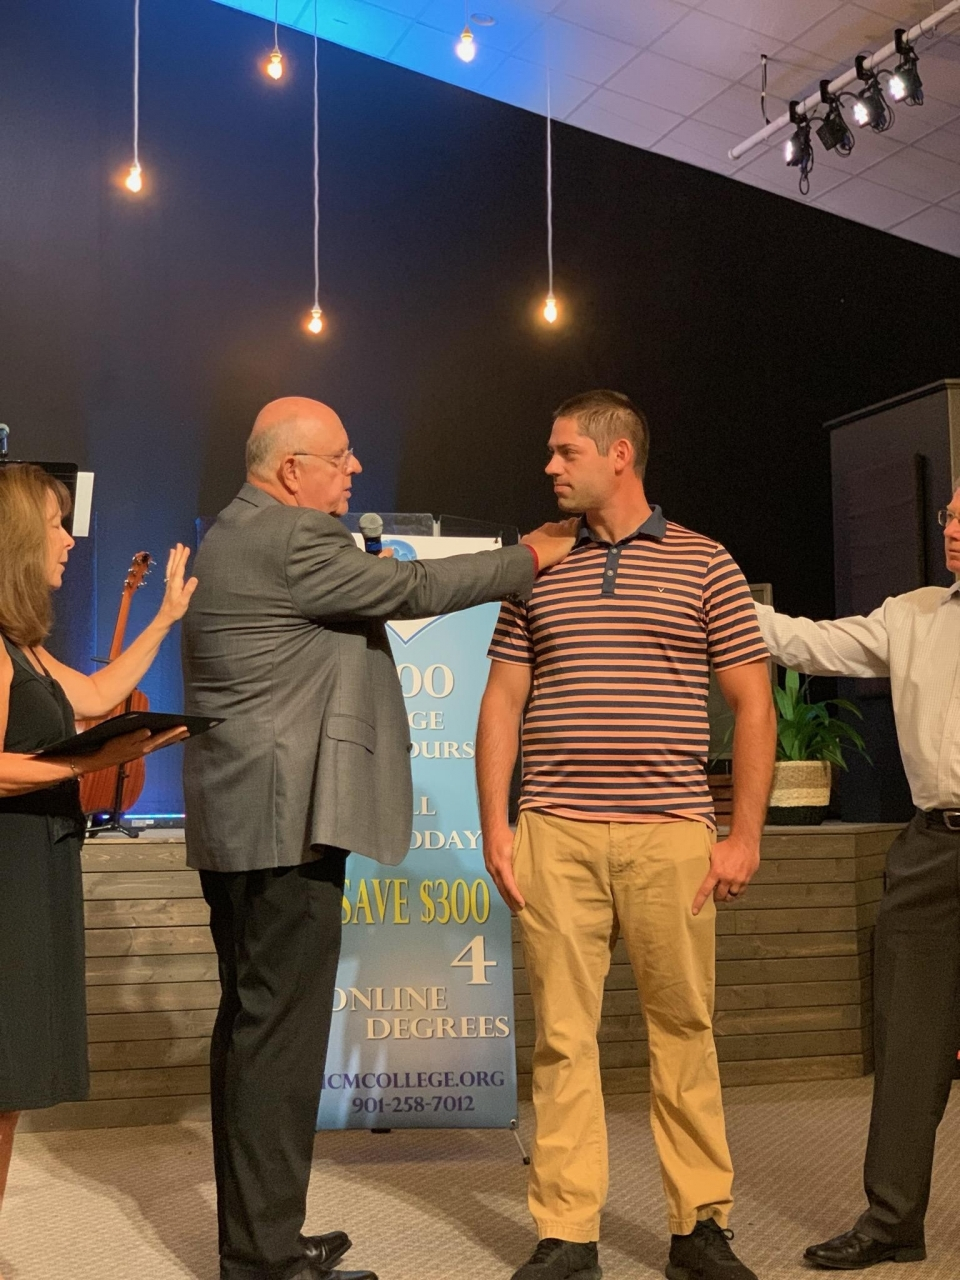 It was an honor and a privilege to licensed and ordained Jake Snavely last Sunday at Freedom Fellowship Church in Orlando.  Jake worked very hard thru the International College of ministry license and ordination program . We licensed and ordained Jake as a minister of the Gospel of Jesus Christ. I know that Jake will be a very worthy representative of our savior.  Congratulations to Jake!